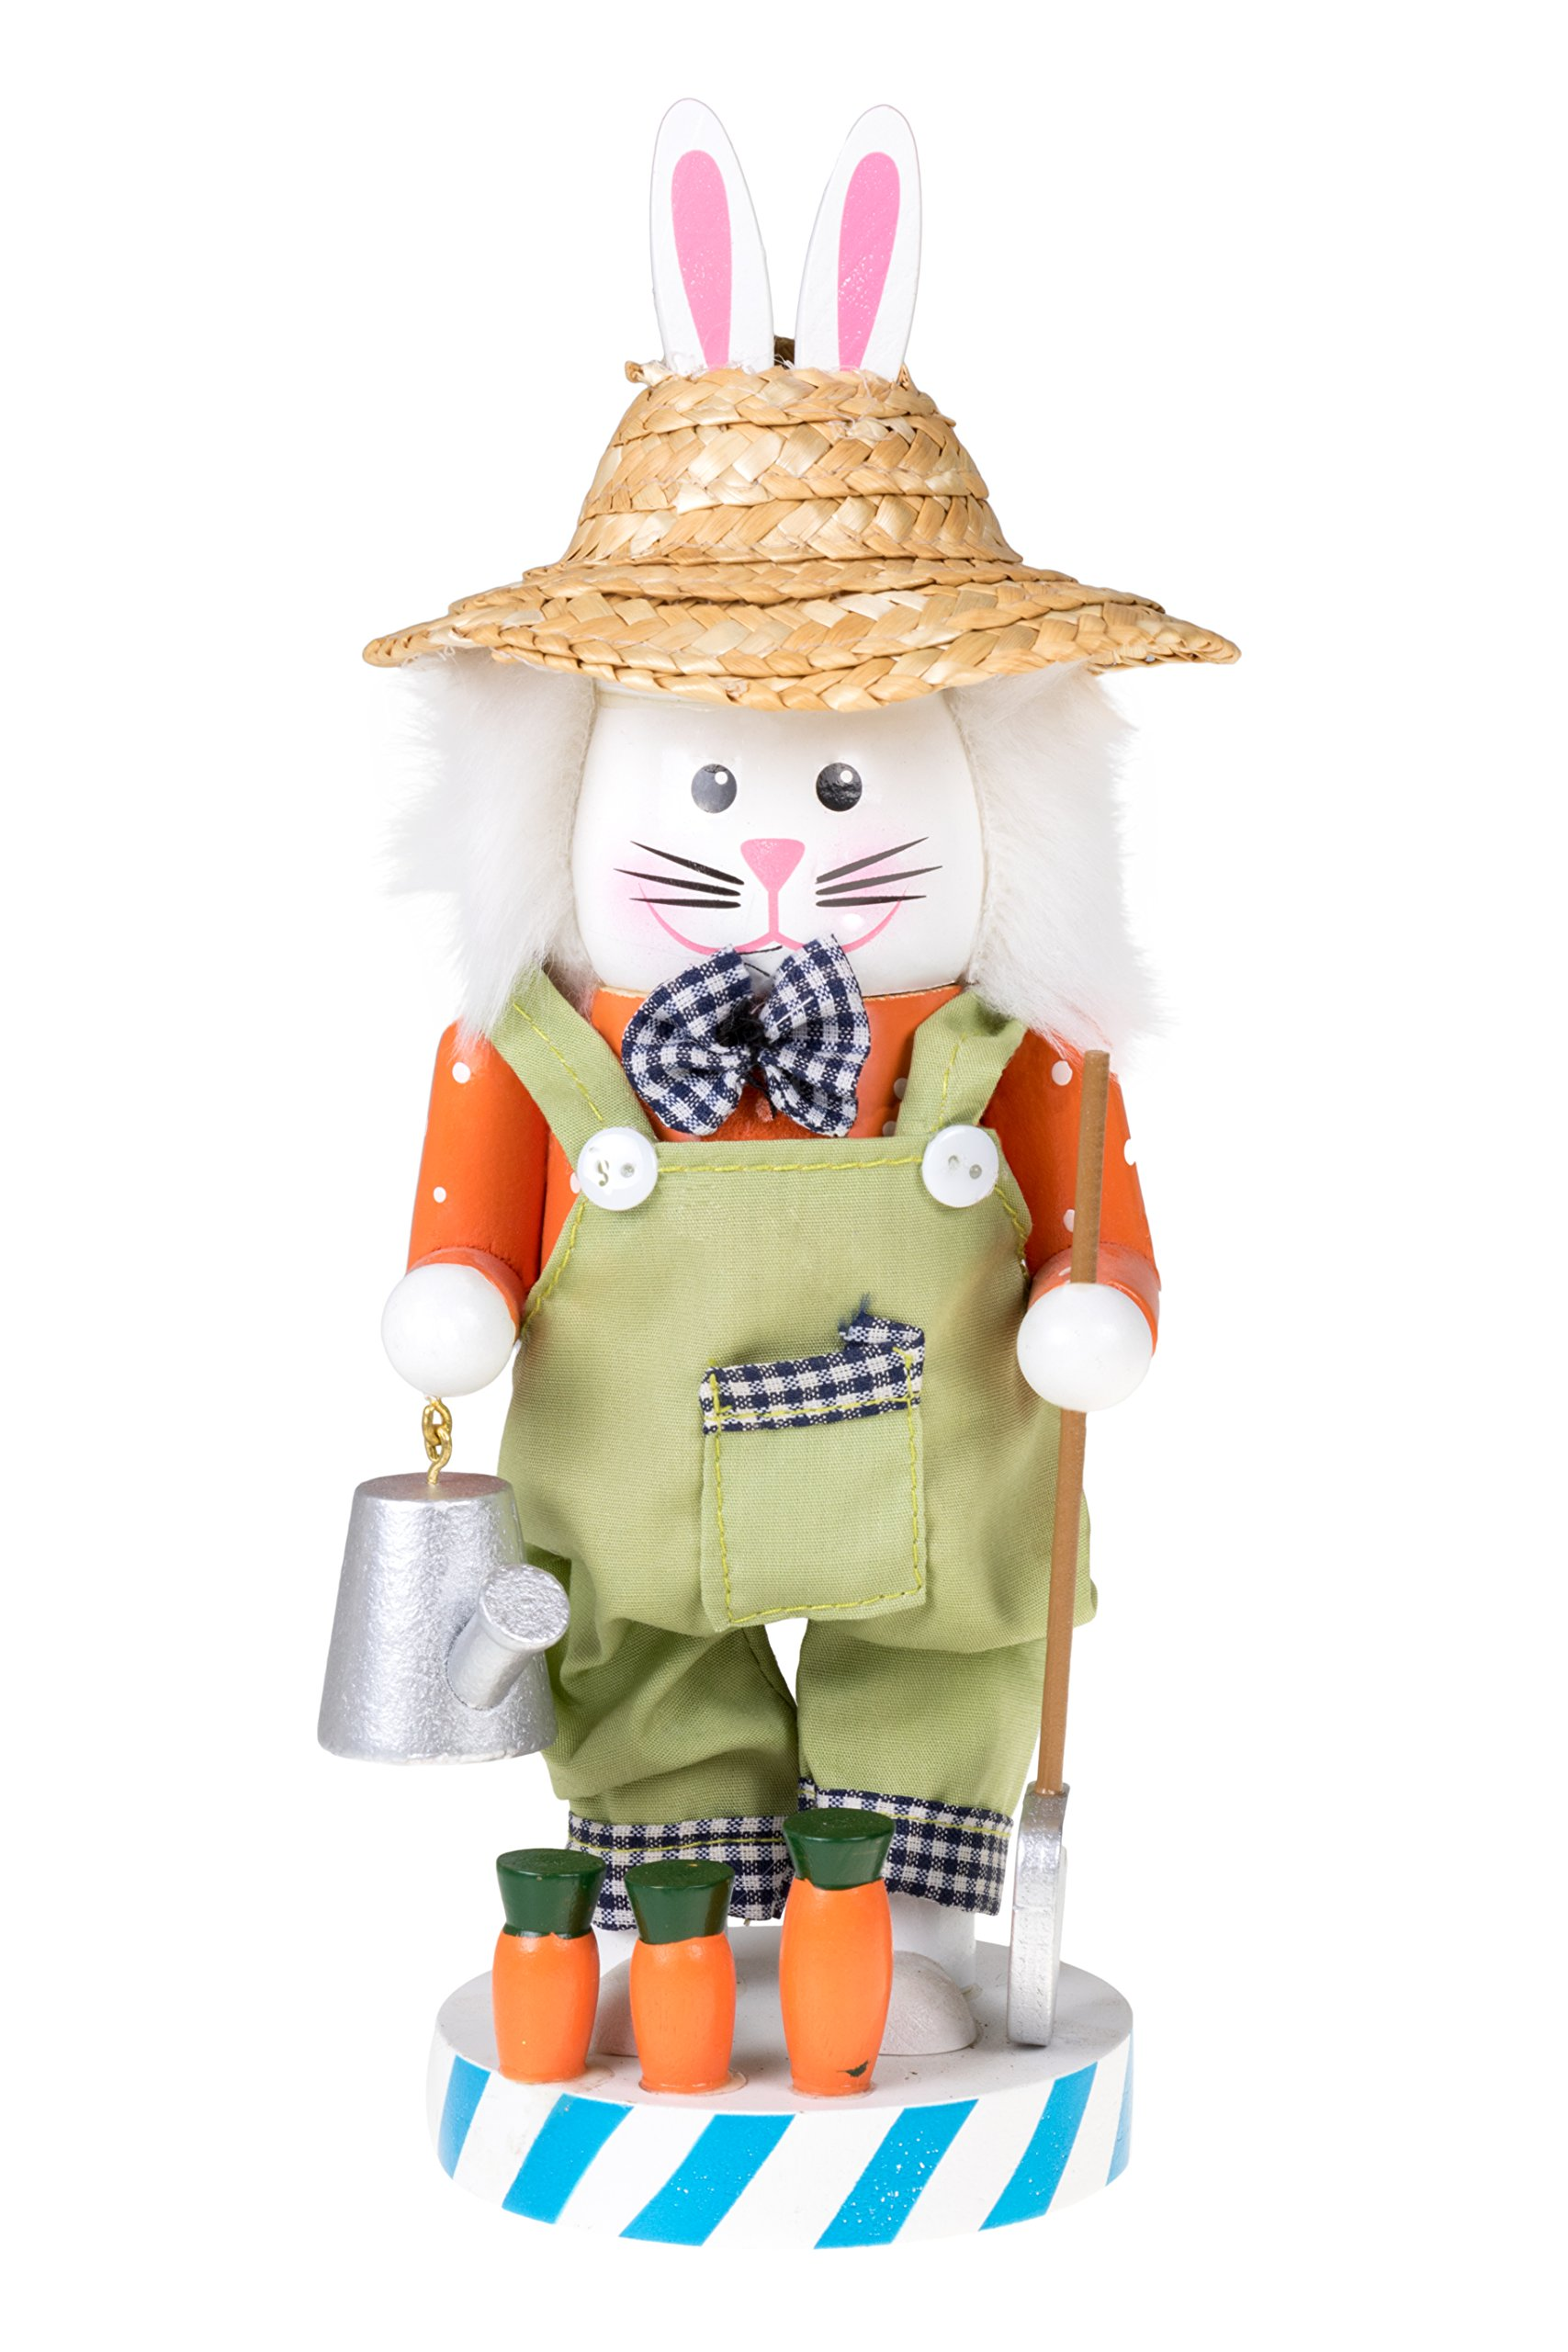 Gardening Bunny Spring Nutcracker by Clever Creations | Wearing Straw Hat and Brown Overalls | Watering Can and Shovel | Collectible Wooden Nutcracker | Festive Holiday Decor | 100% Wood |10'' Tall